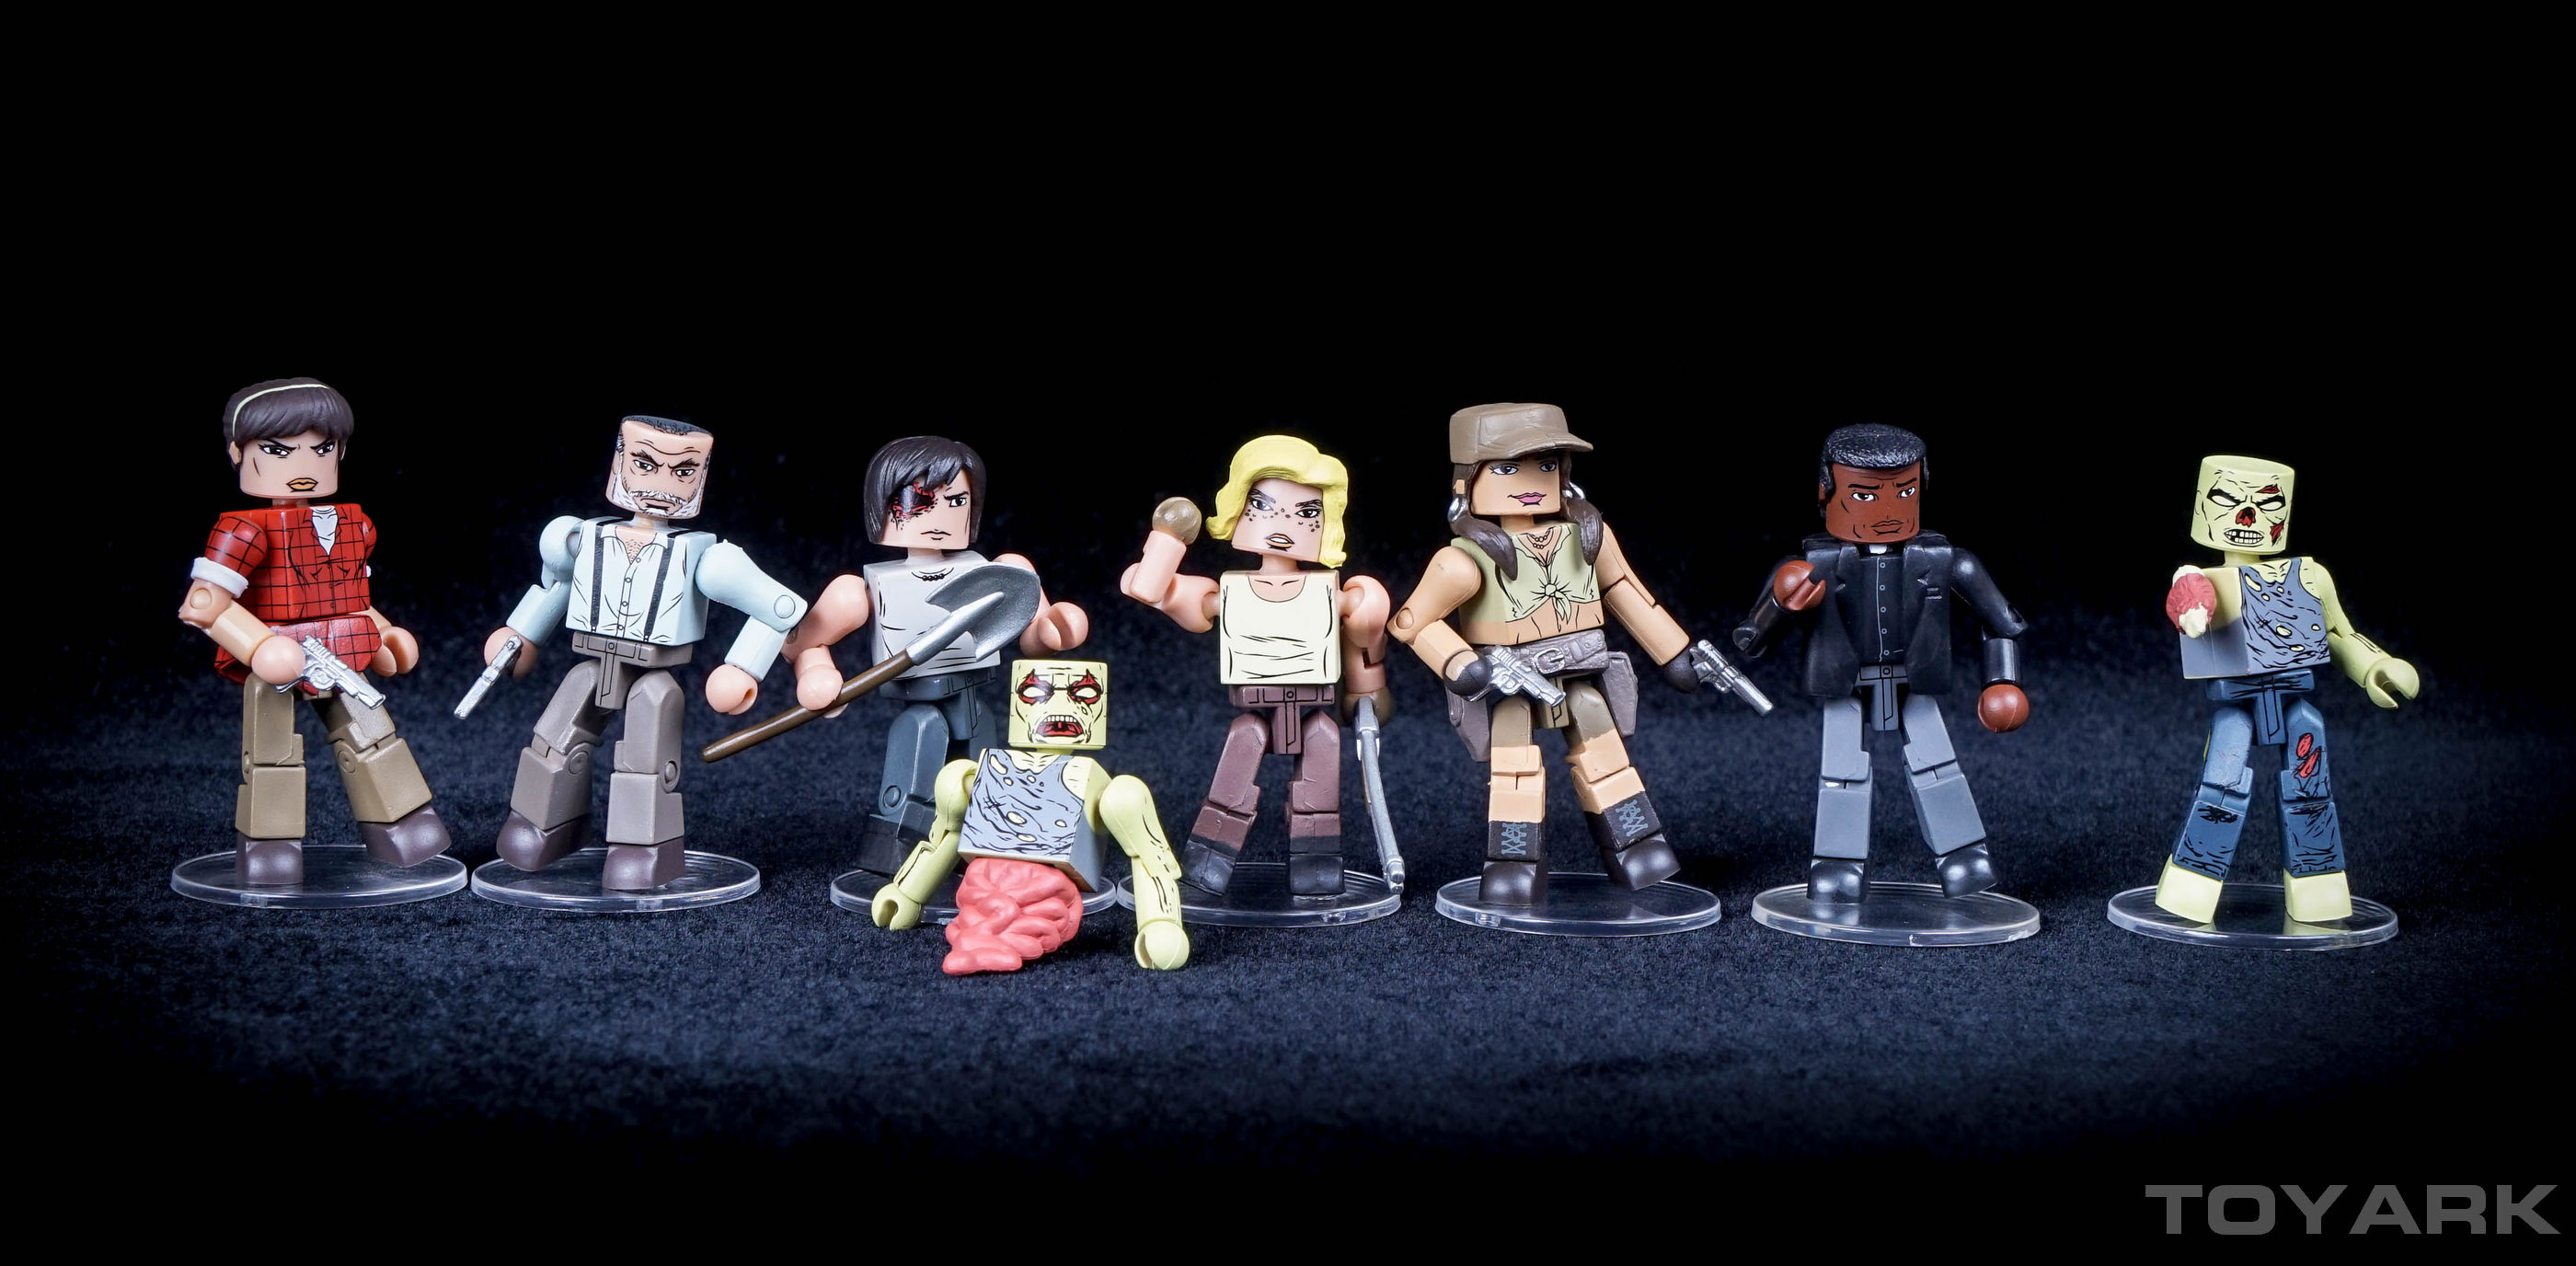 http://news.toyark.com/wp-content/uploads/sites/4/2015/11/Walking-Dead-S8-Minimates-088.jpg